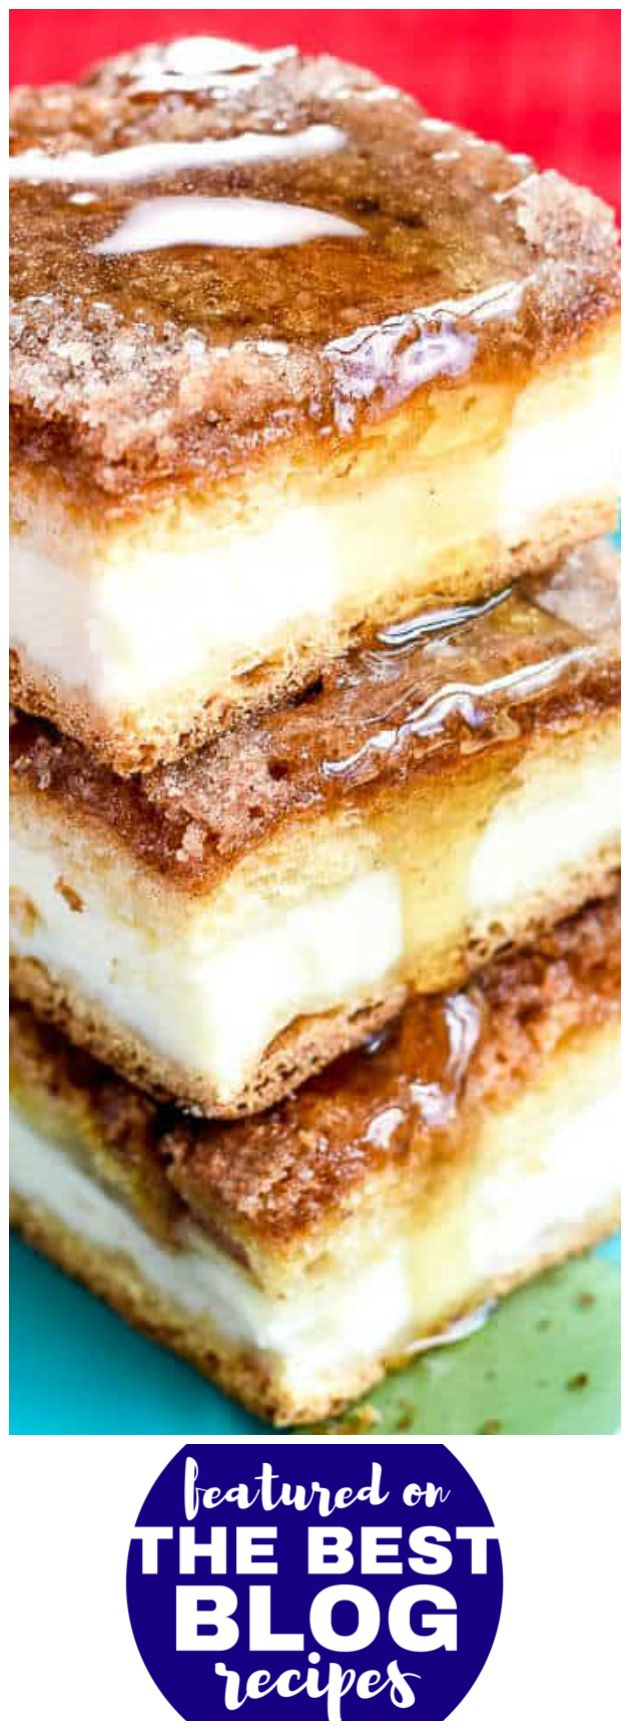 SOPAPILLA CHEESECAKE BARS from Flavor Mosaic are #11 on our list of the BEST DESSERT BAR RECIPES || Featured on The Best Blog Recipes with the original bloggers permissions #dessert #cheesecake #sopapilla #recipe